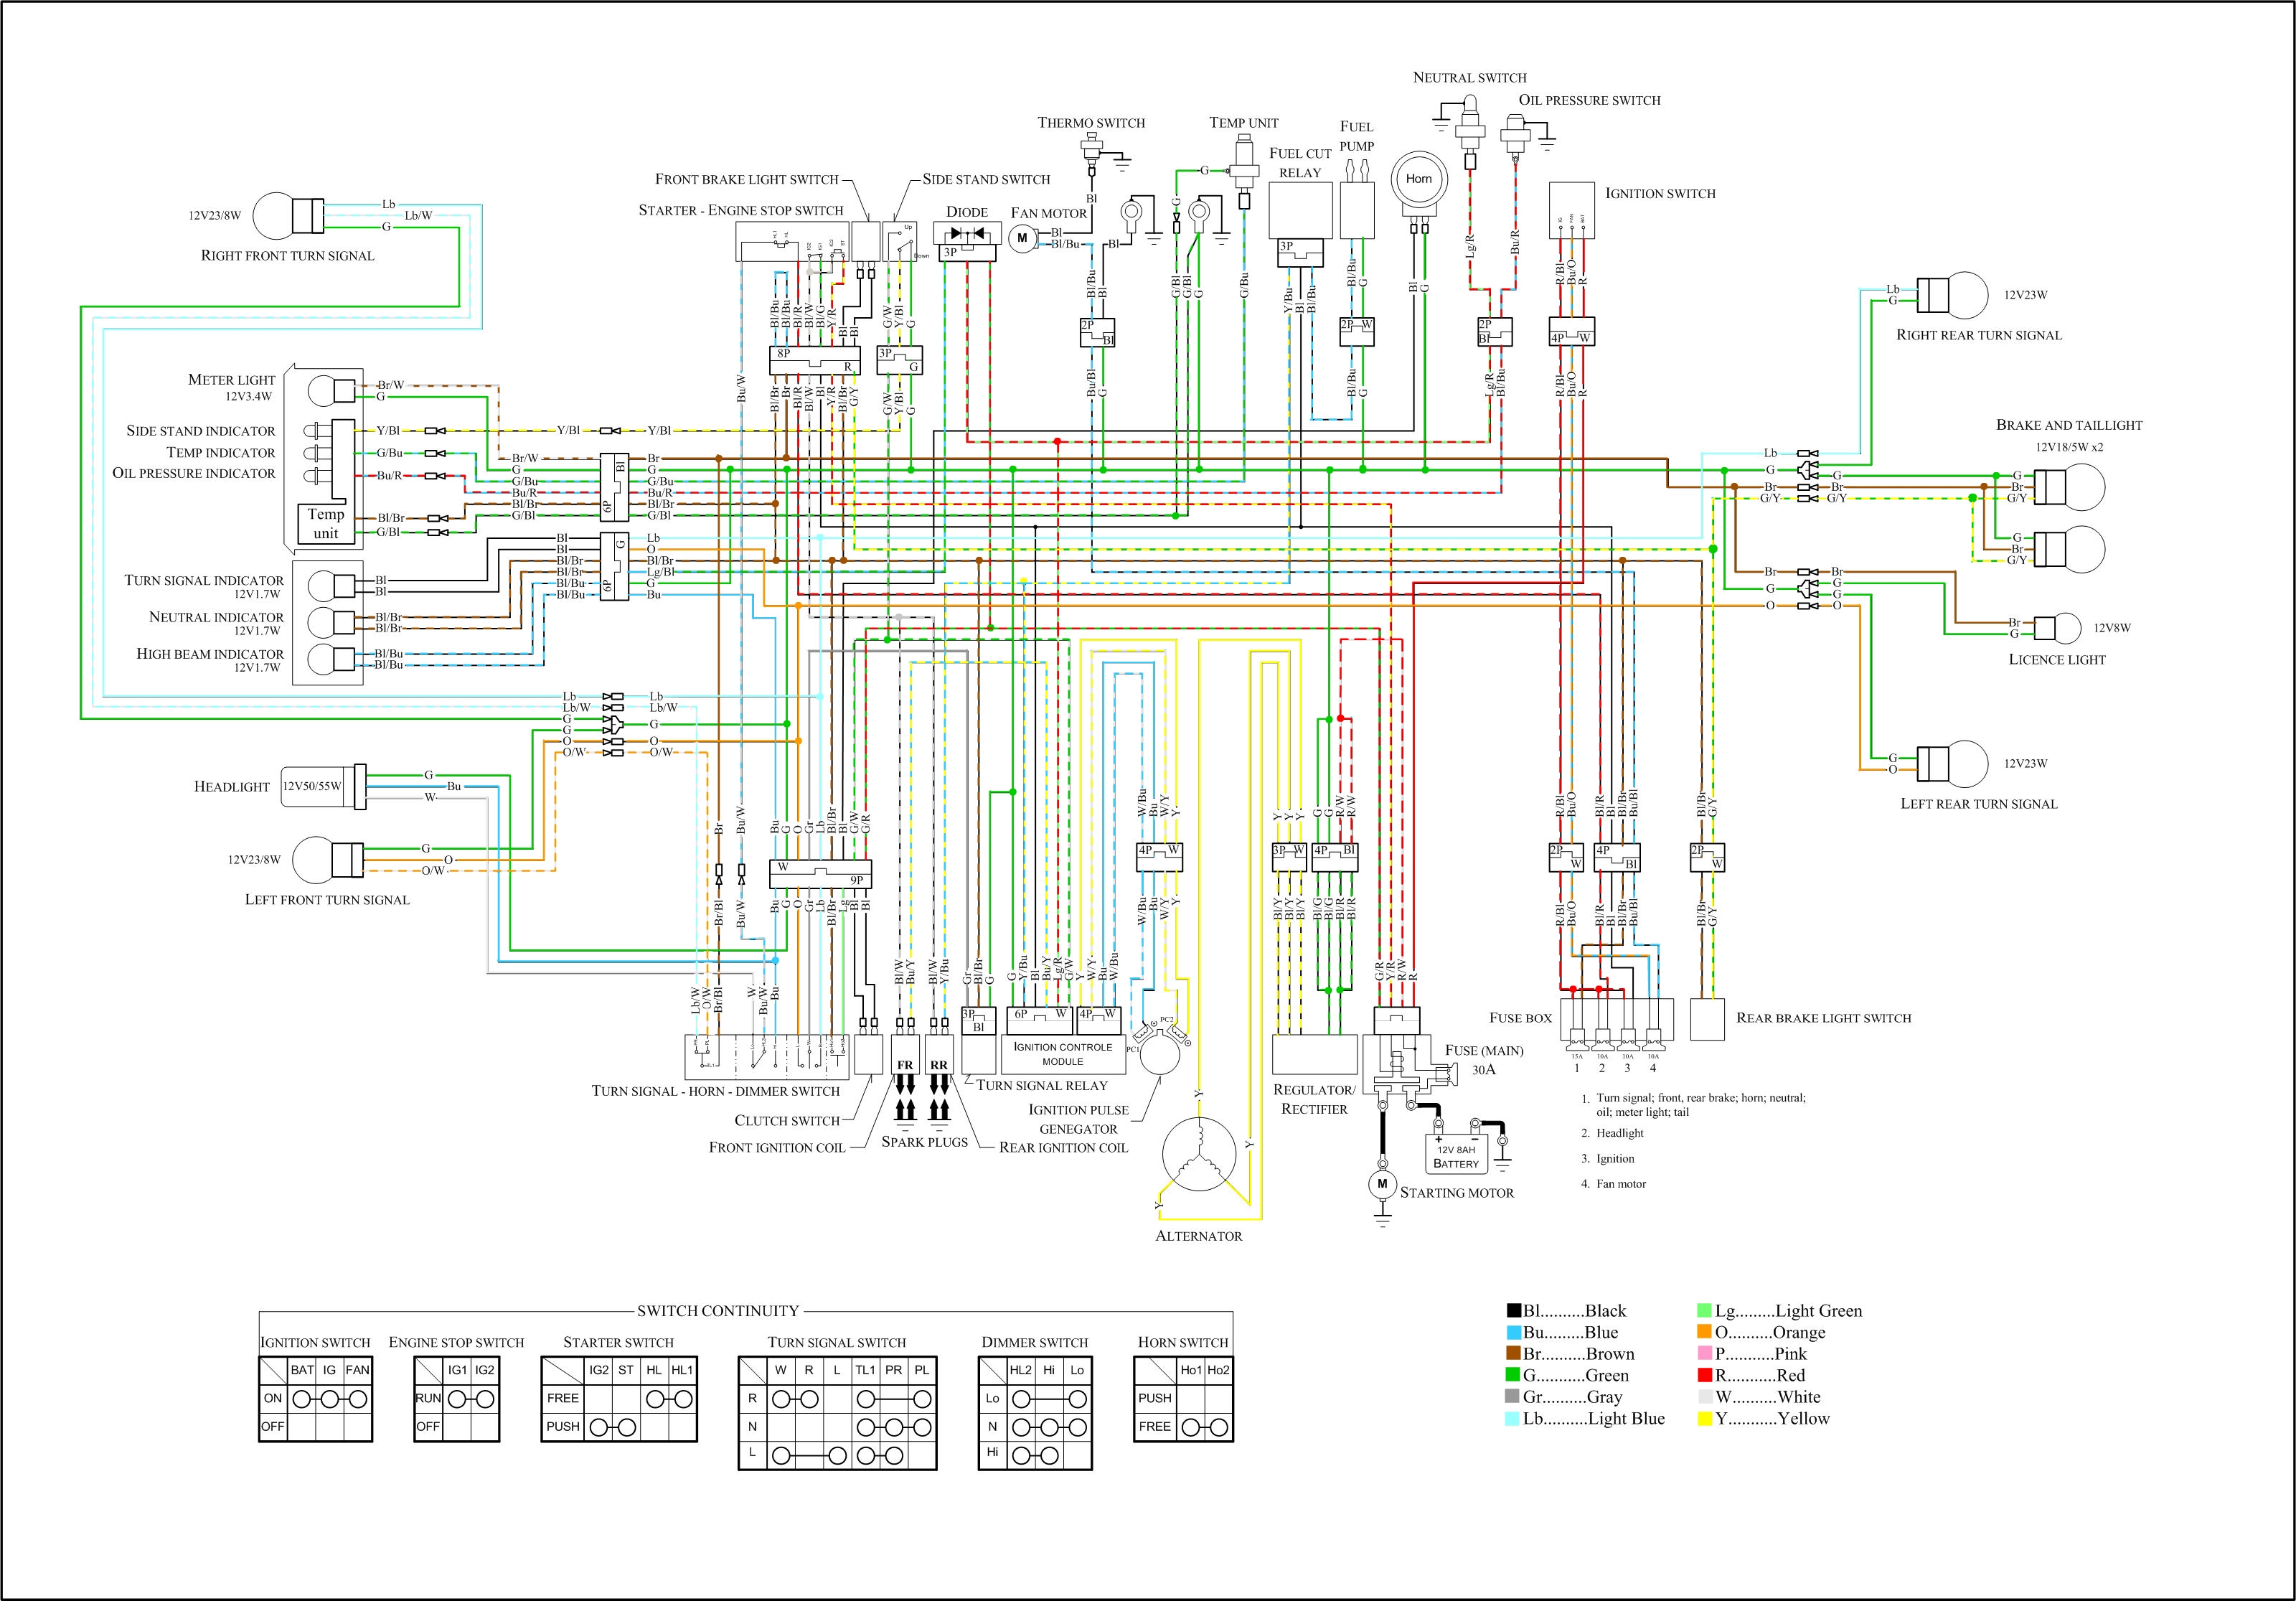 Wiring Diagram Yamaha Virago 750 Honda Motor Scooters 49cc Opinions About Motorcycle Diagrams Rh Cycleterminal Com 50cc